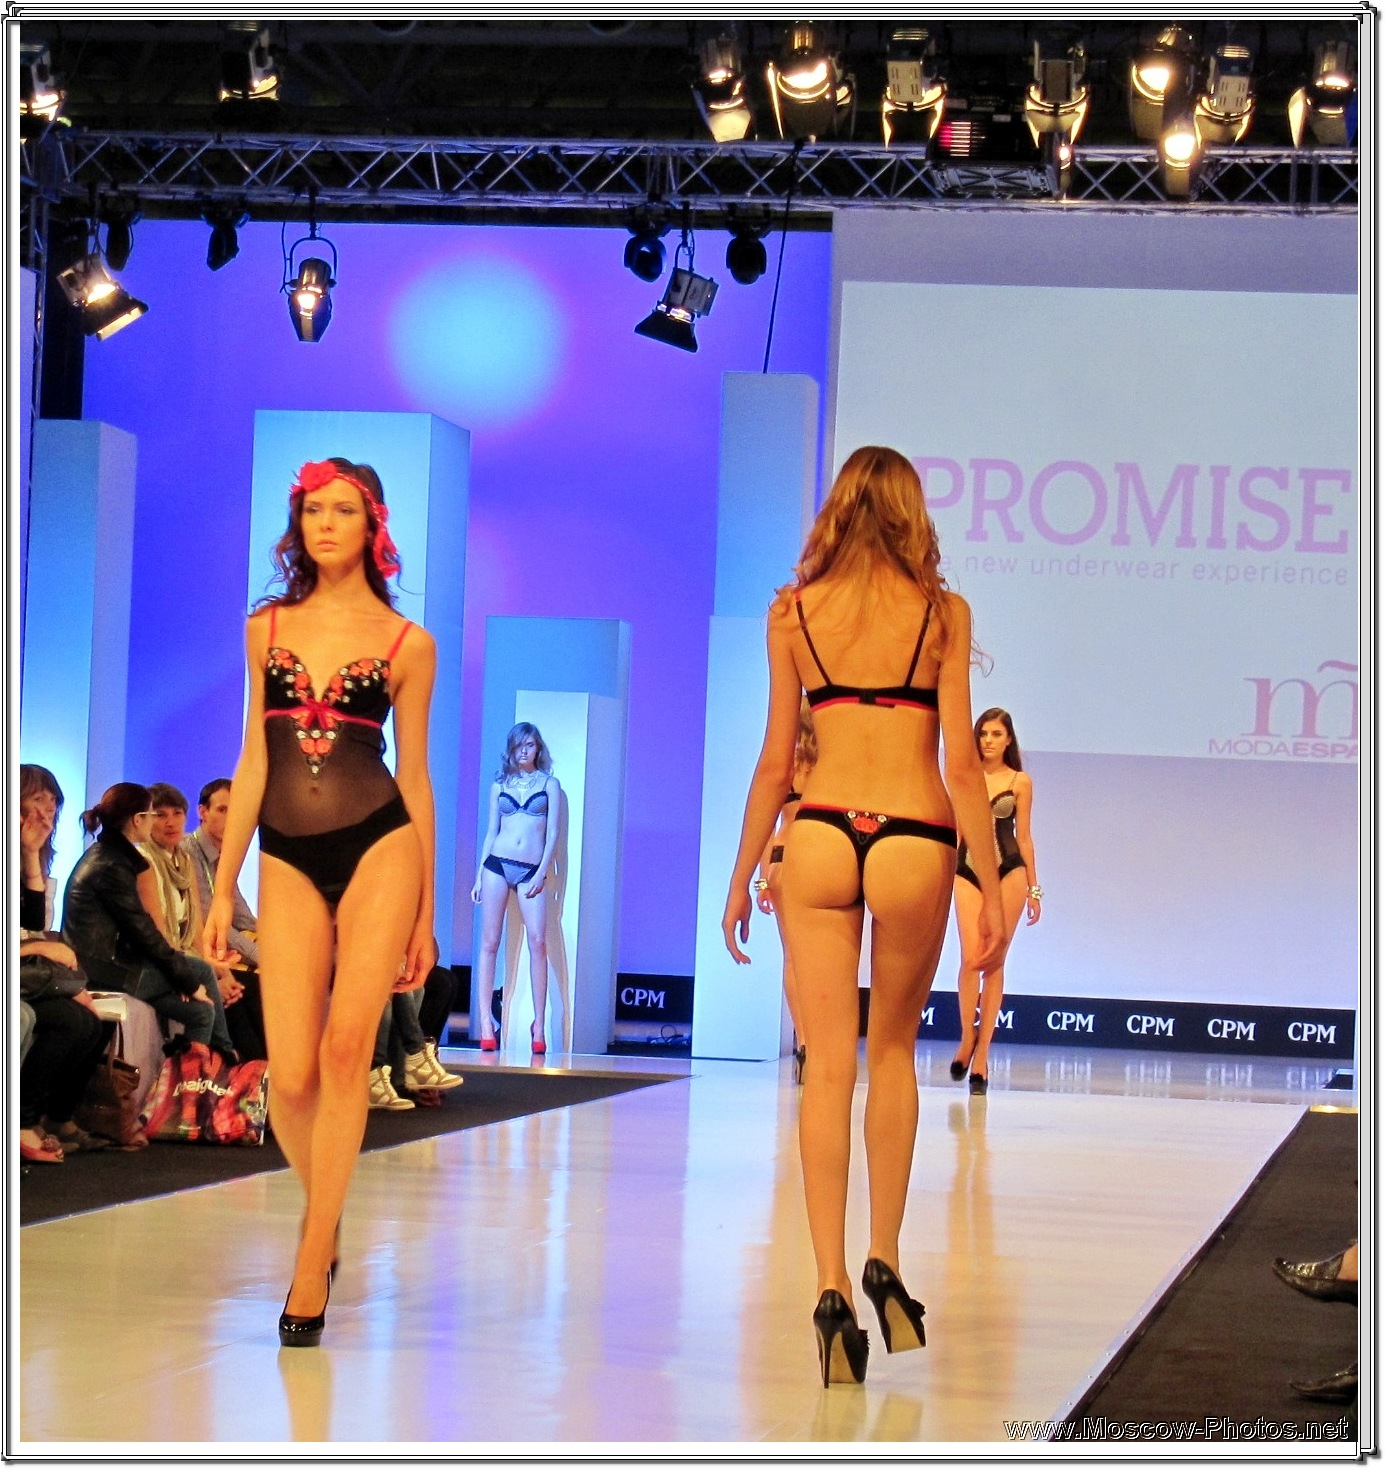 CPM Collection Premiere Moscow  - Promise Lingerie Fashion Show